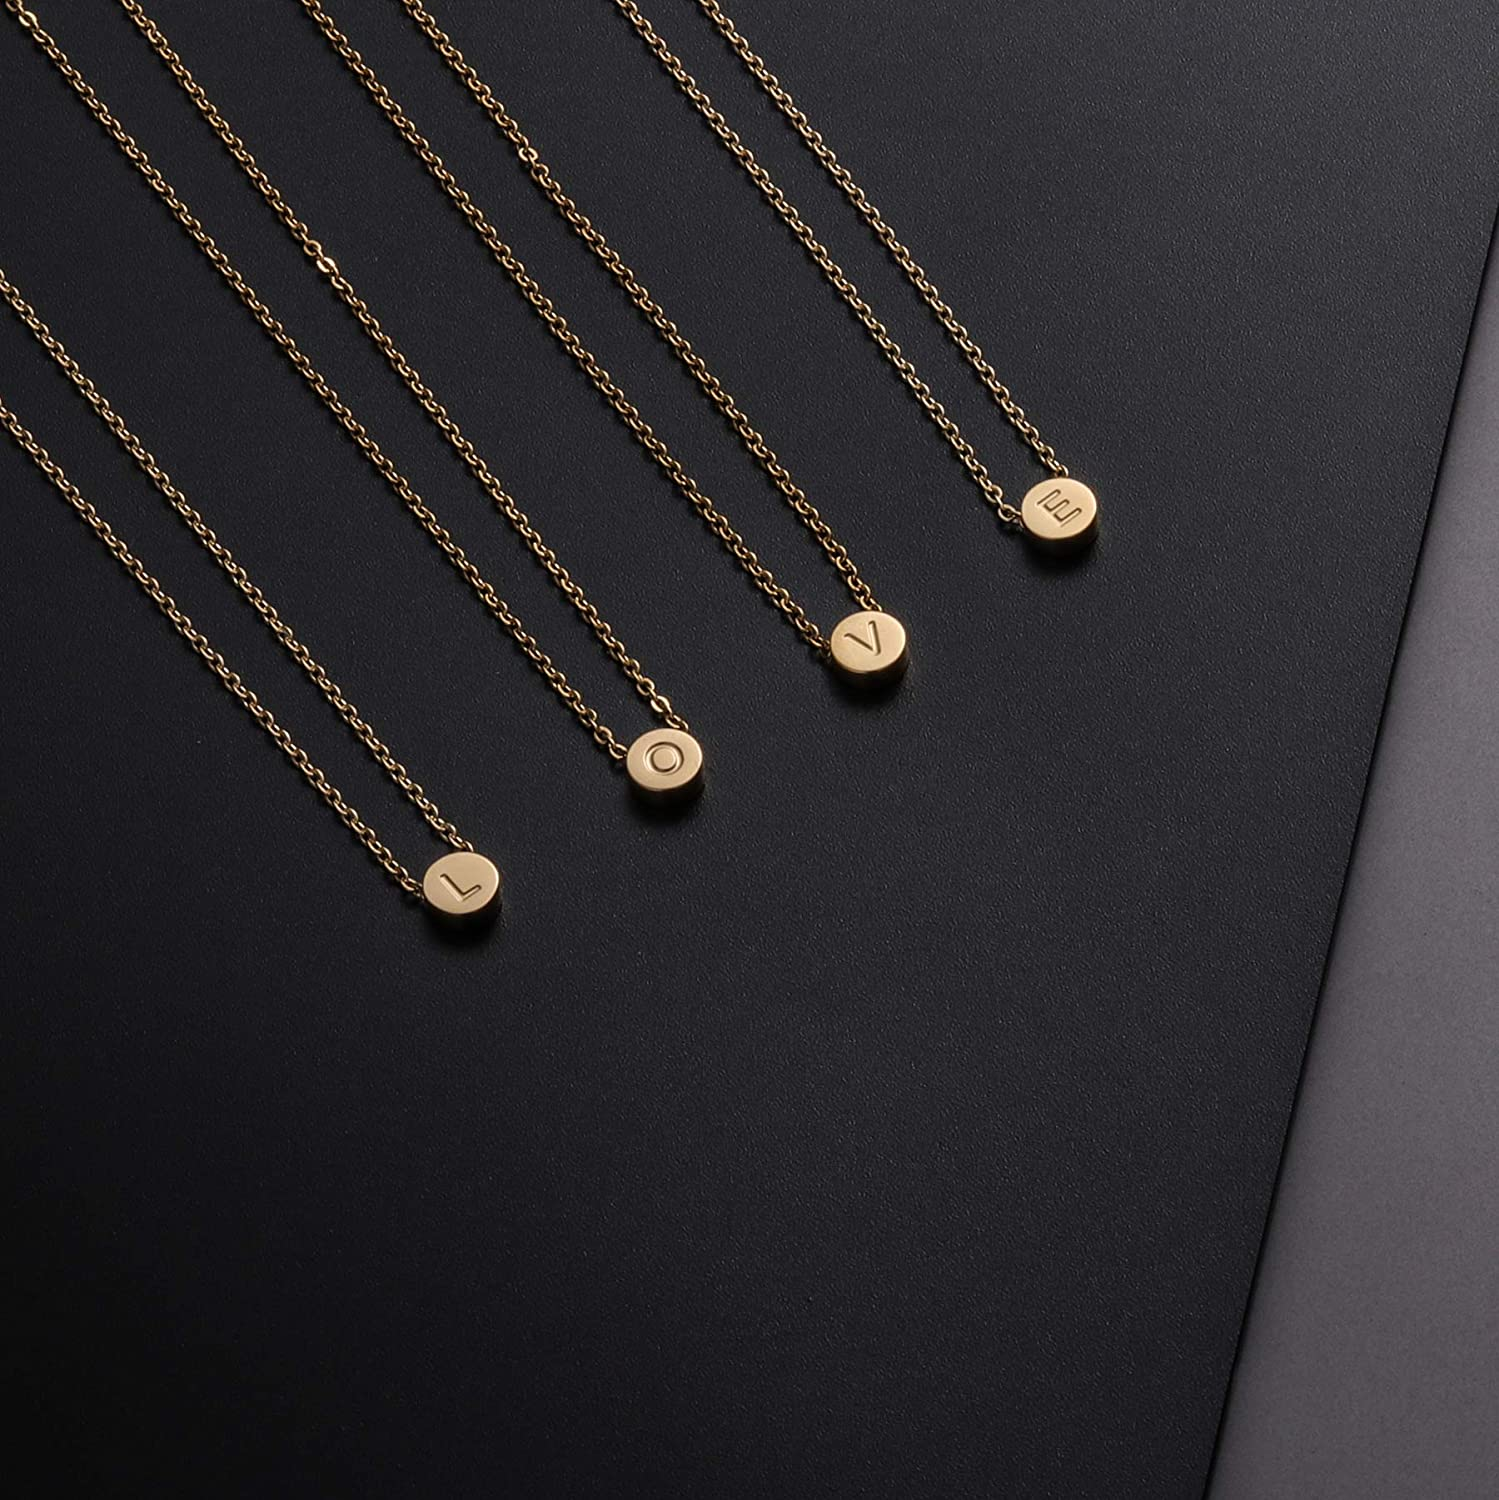 QXTX Initial Necklace for Women Girls,18K Gold Plated Round DotPendant Letter Alphabet Necklace Dainty Tiny Letter Initial Necklace for Women Kids